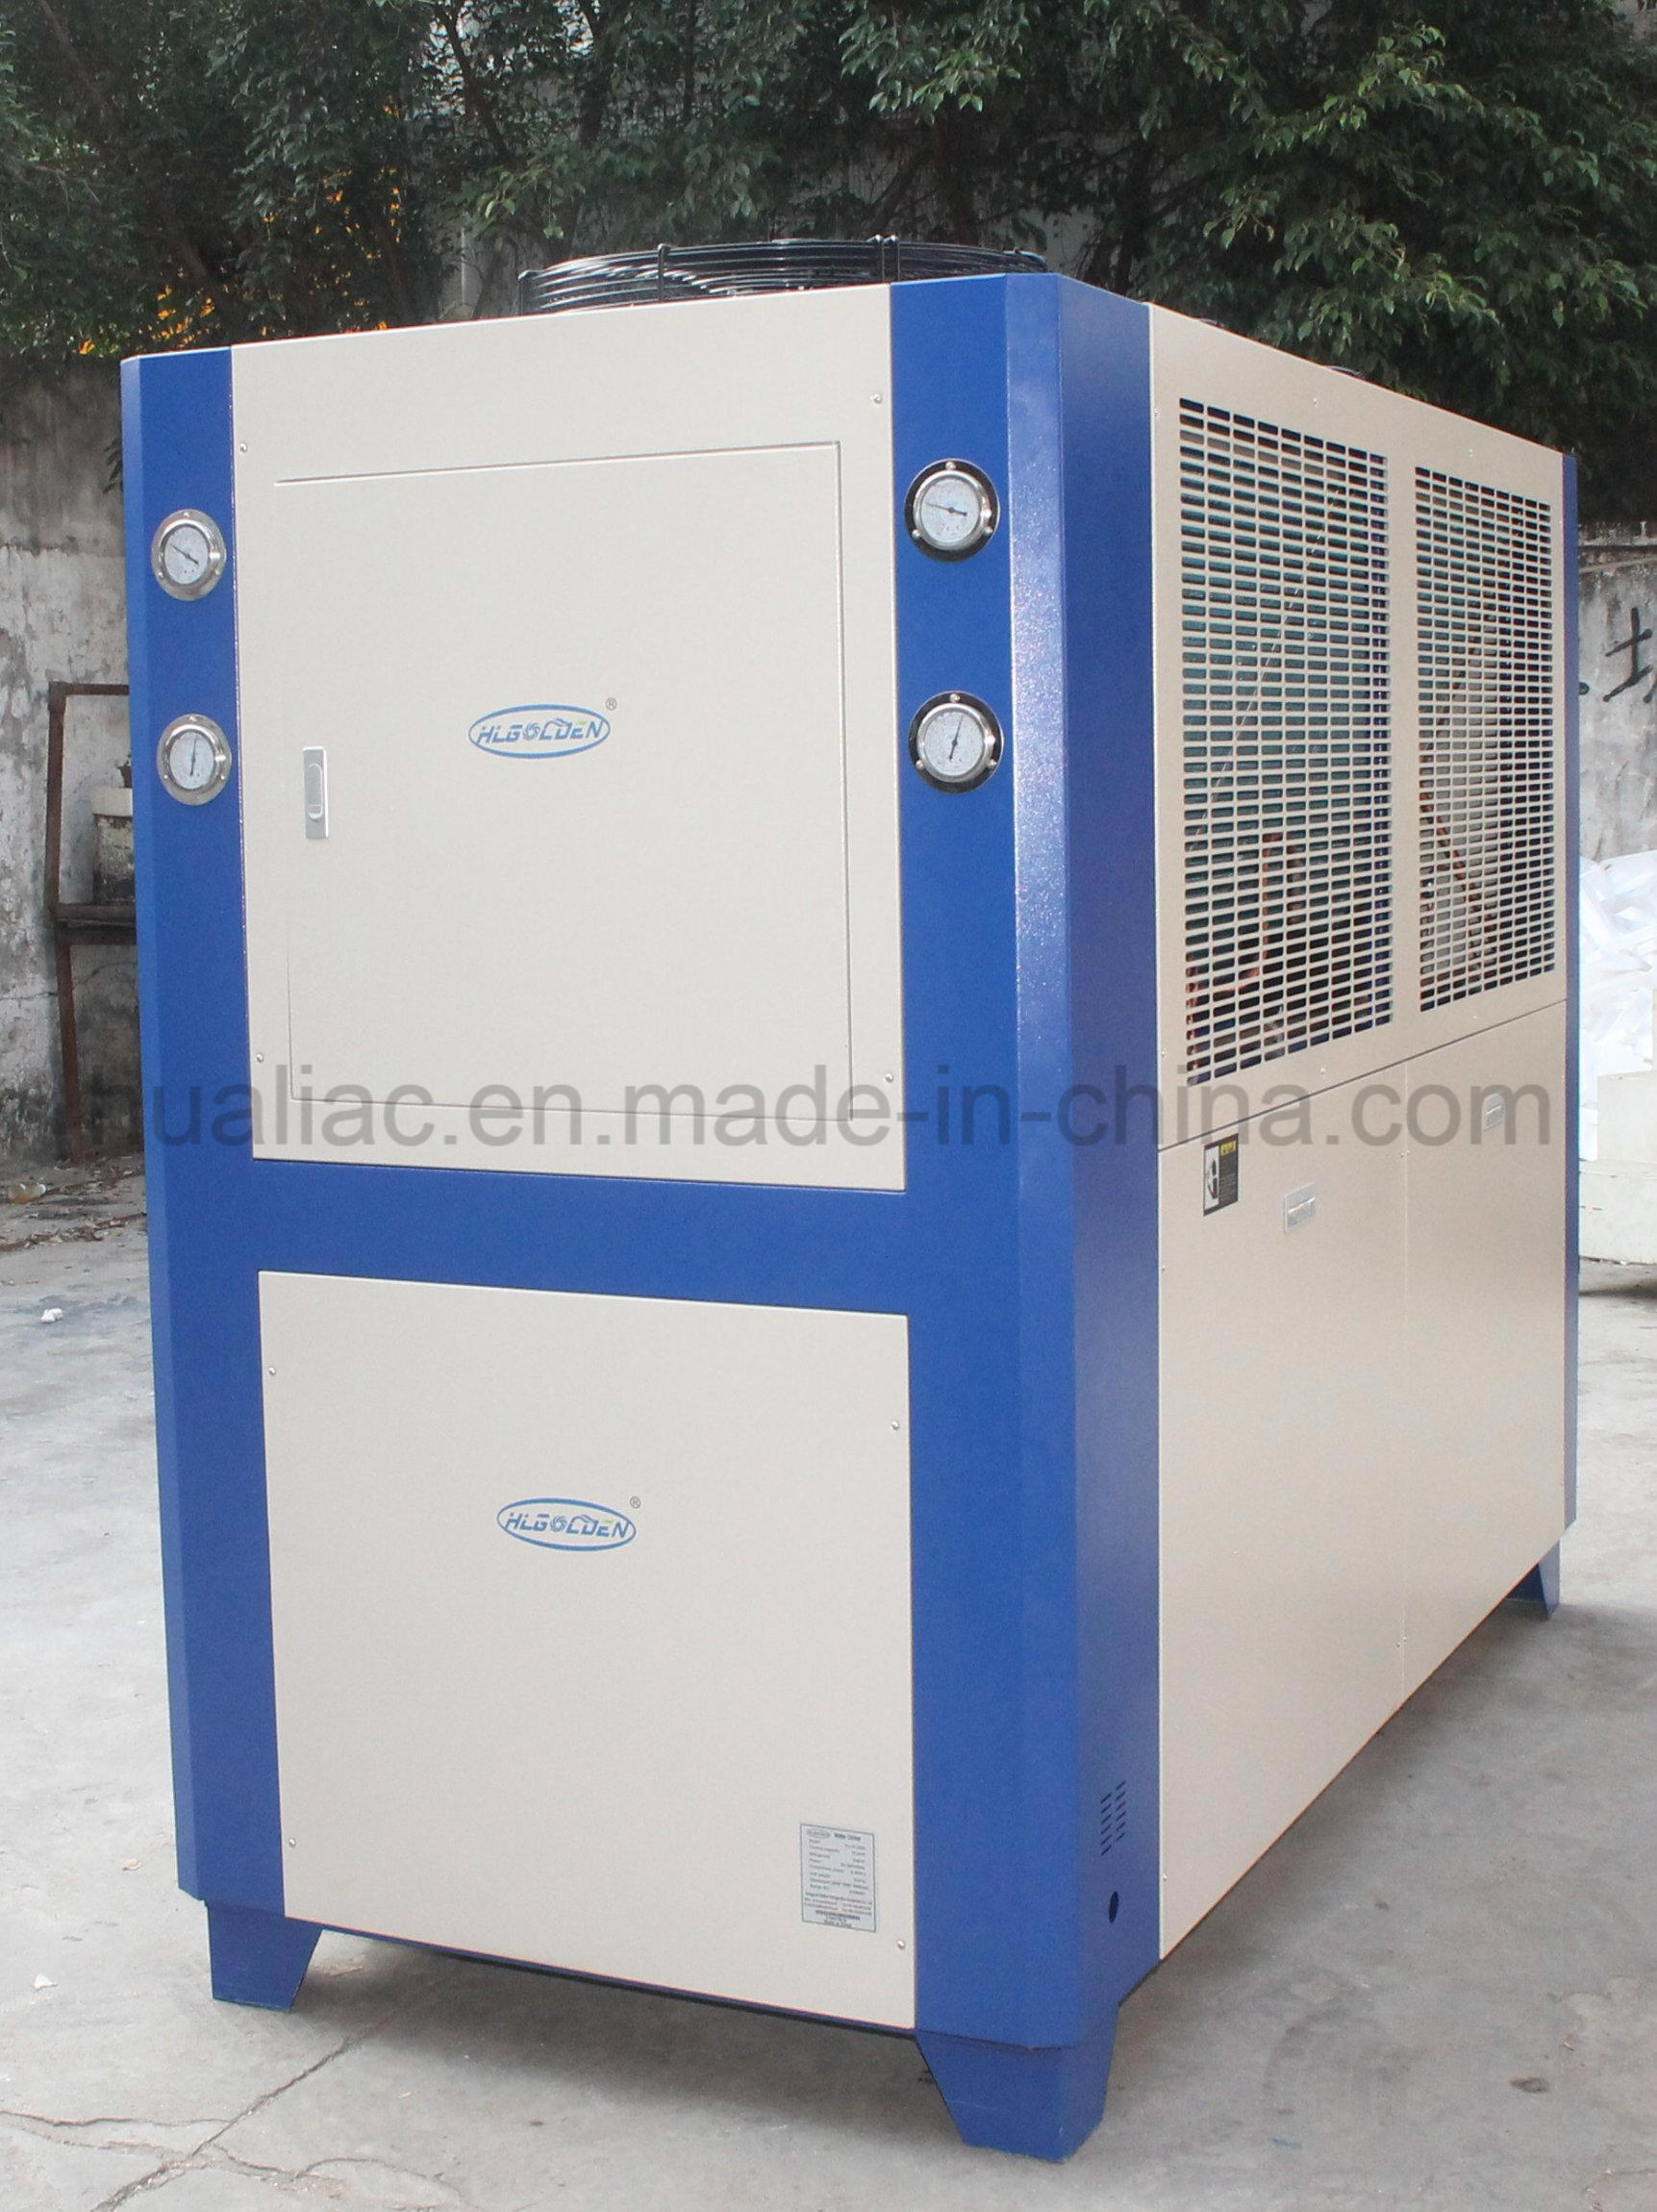 Industrial chillers: description, application, device and types 17